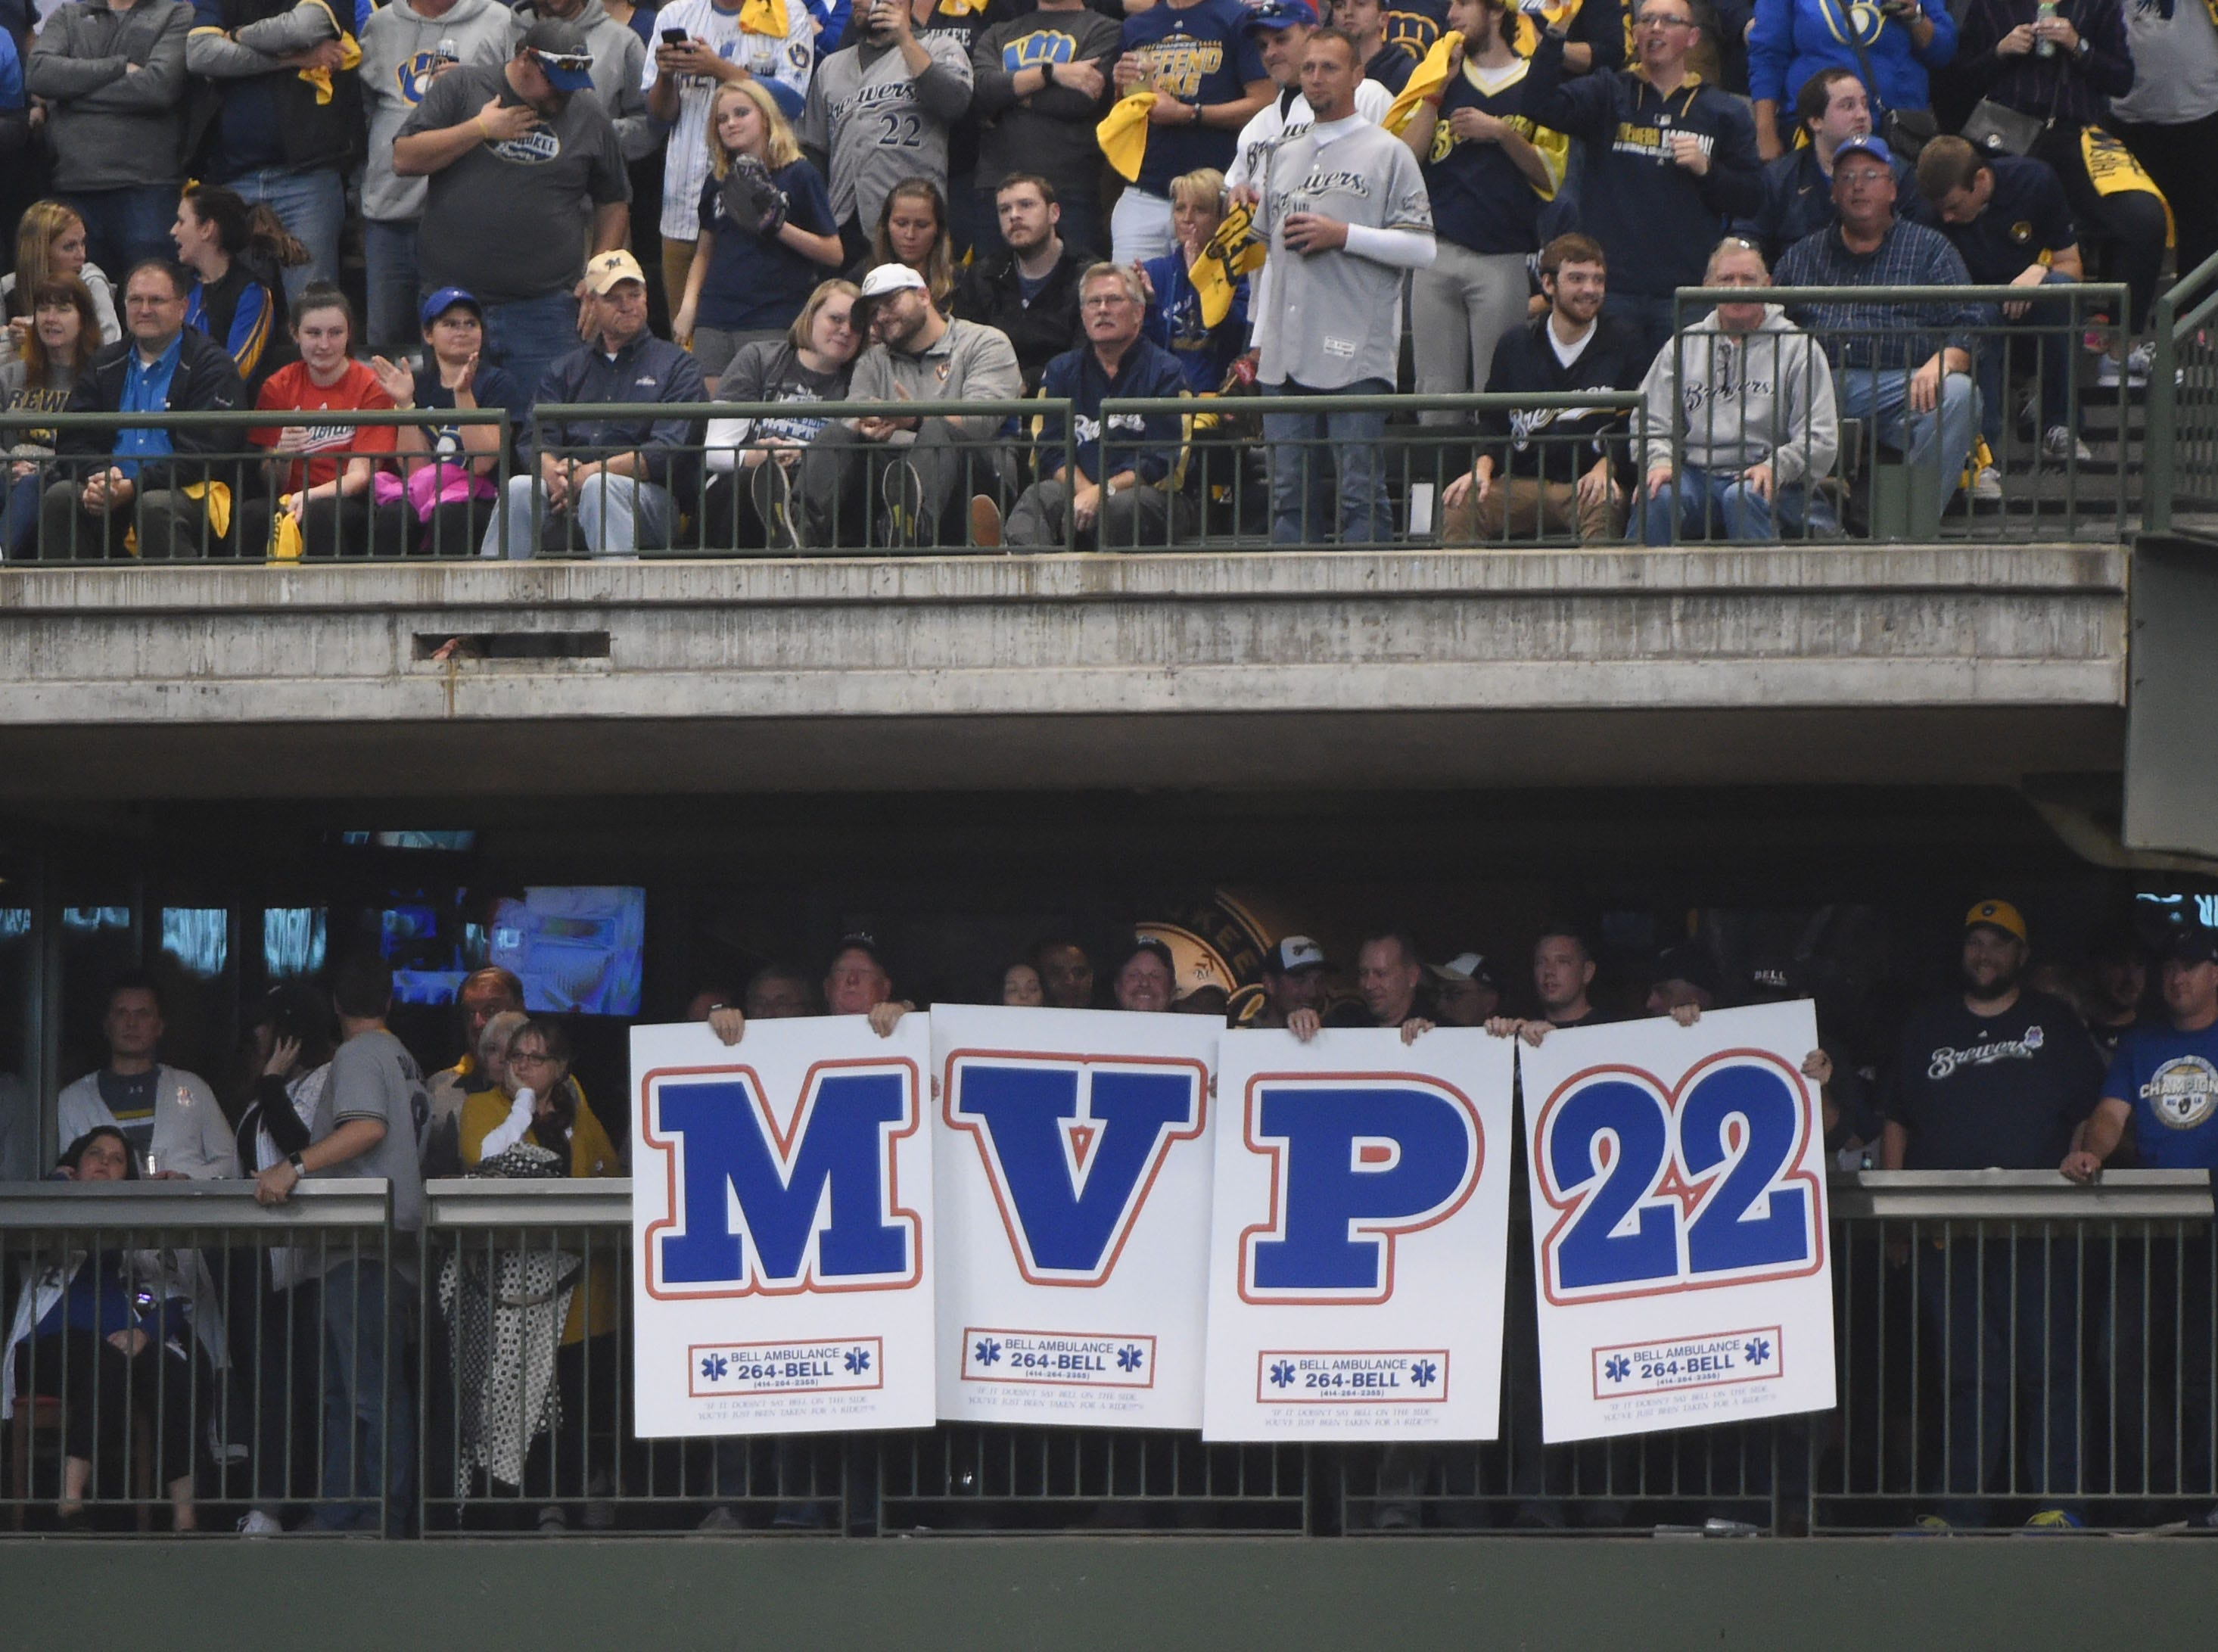 NLDS Game 1: Brewers fans hold up a sign supporting Christian Yelich to win the NL MVP award.